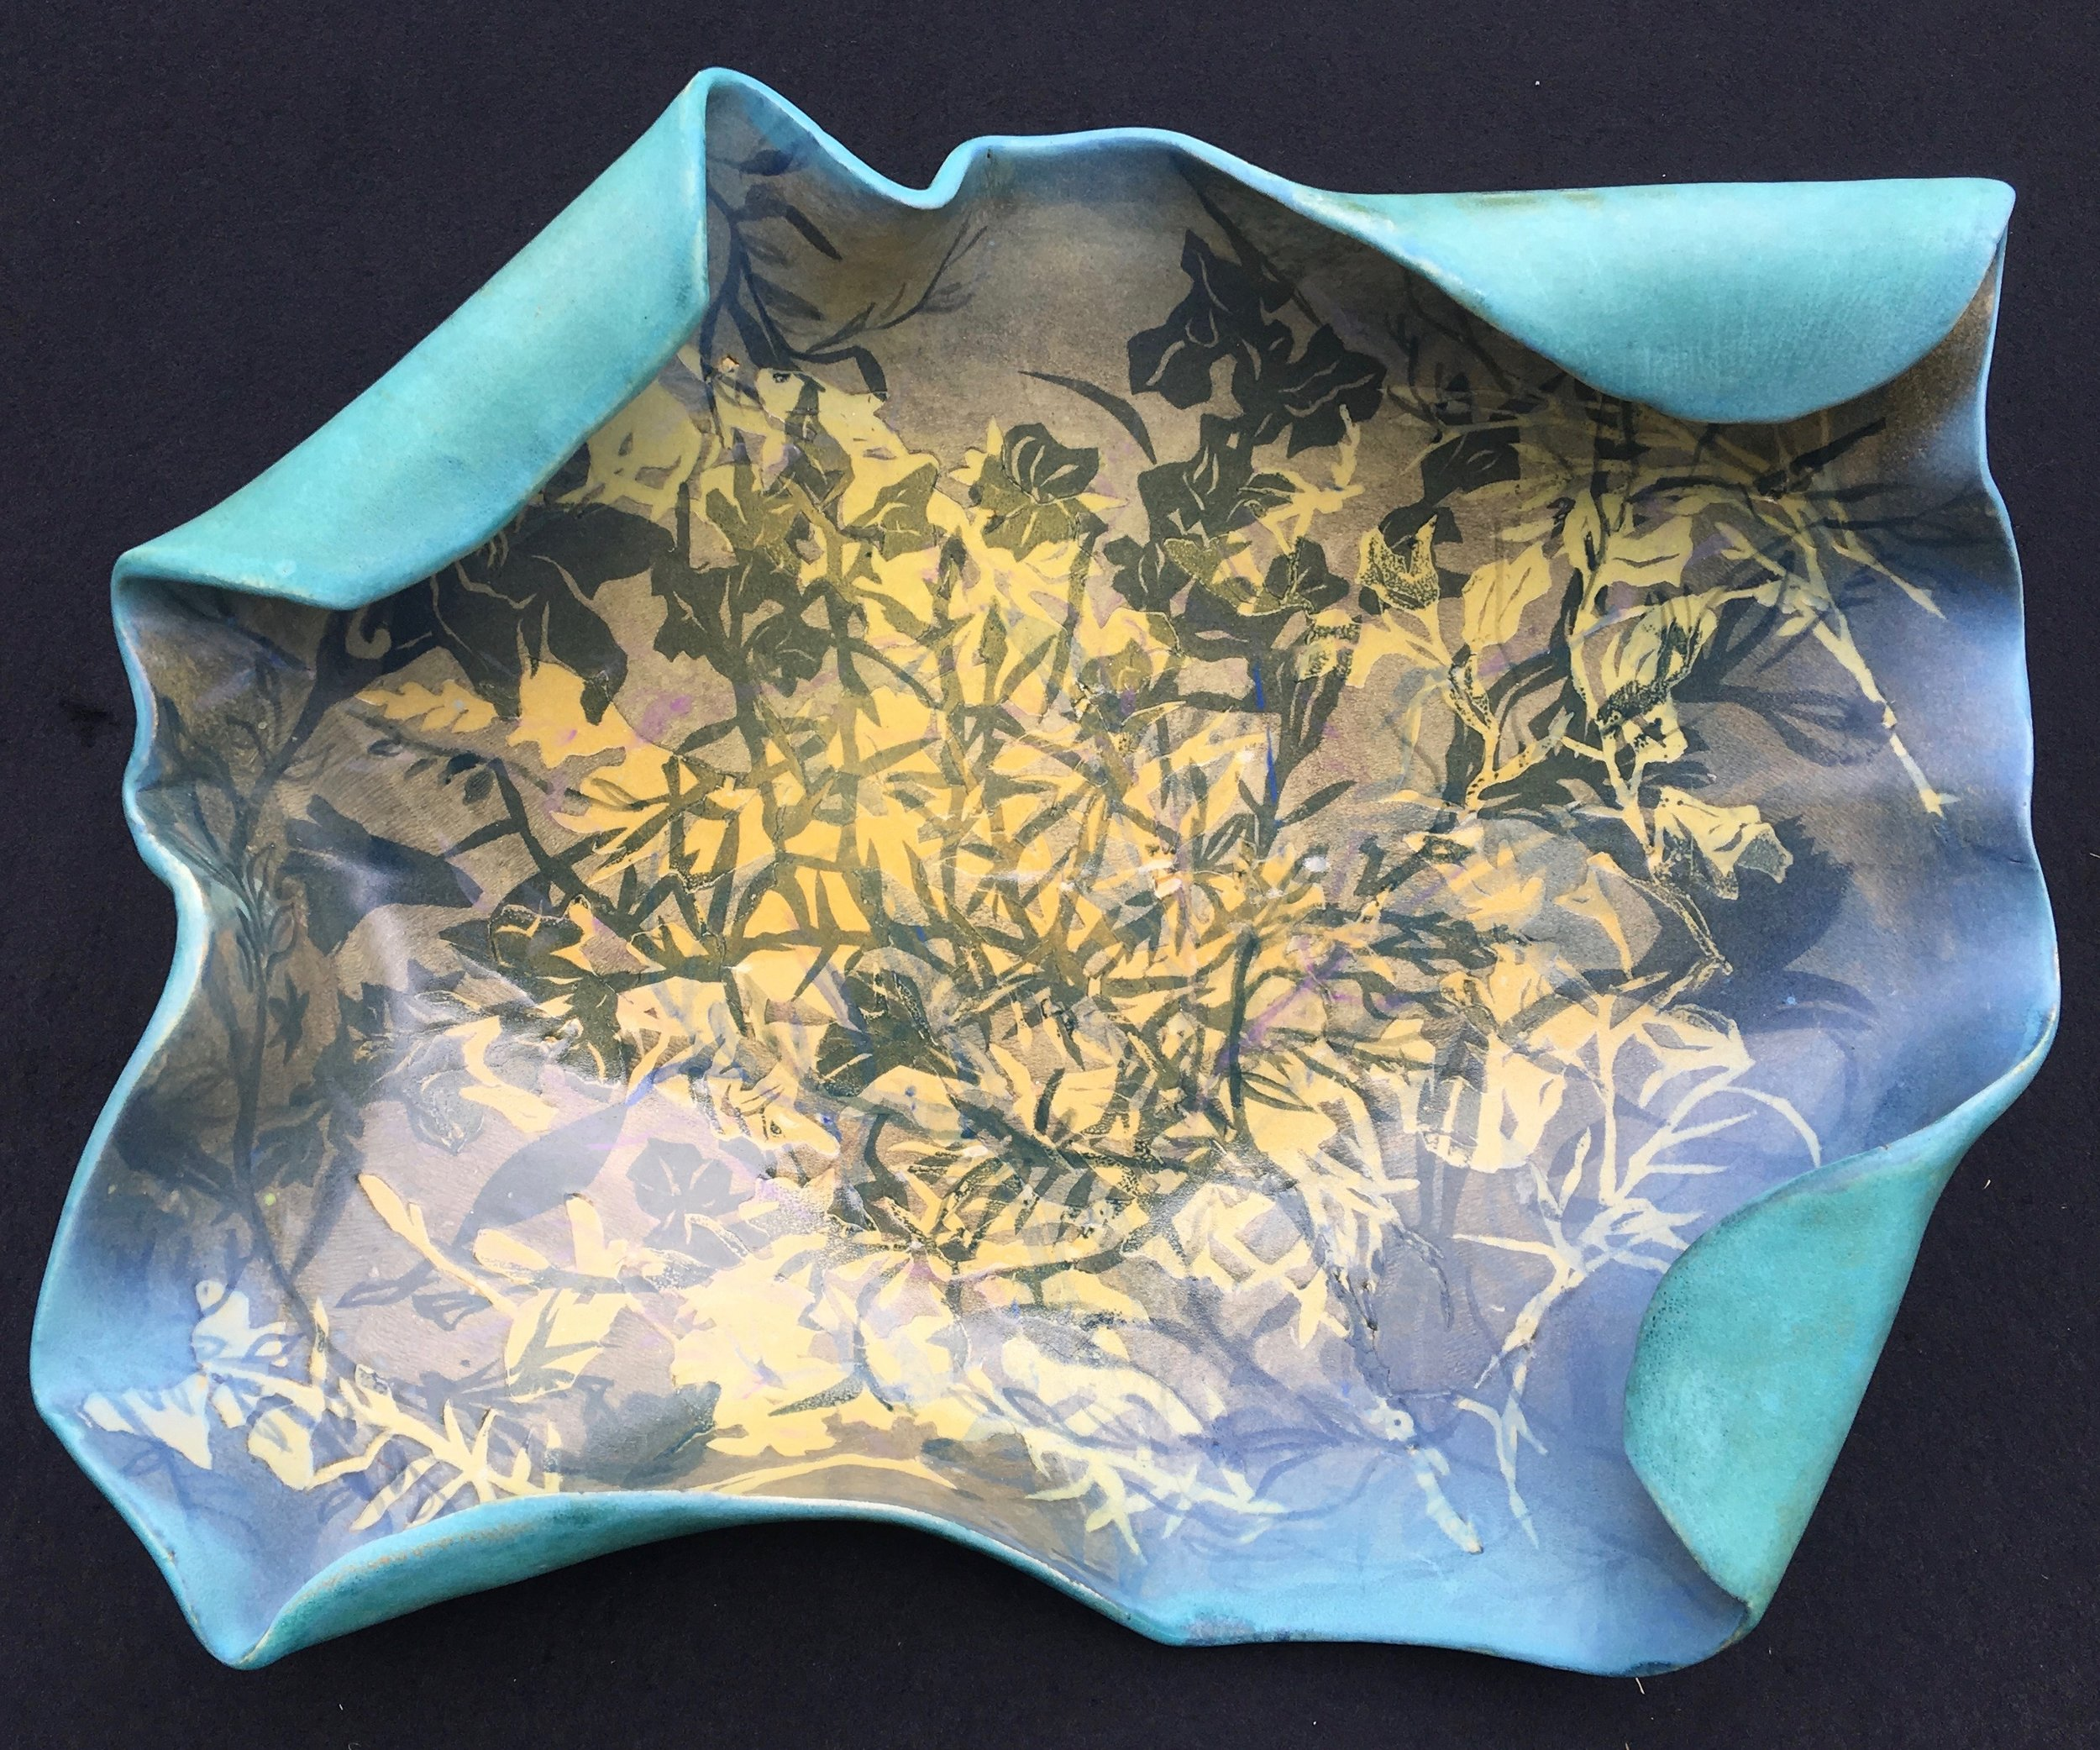 Ceramic by Melissa Katzman Braggins